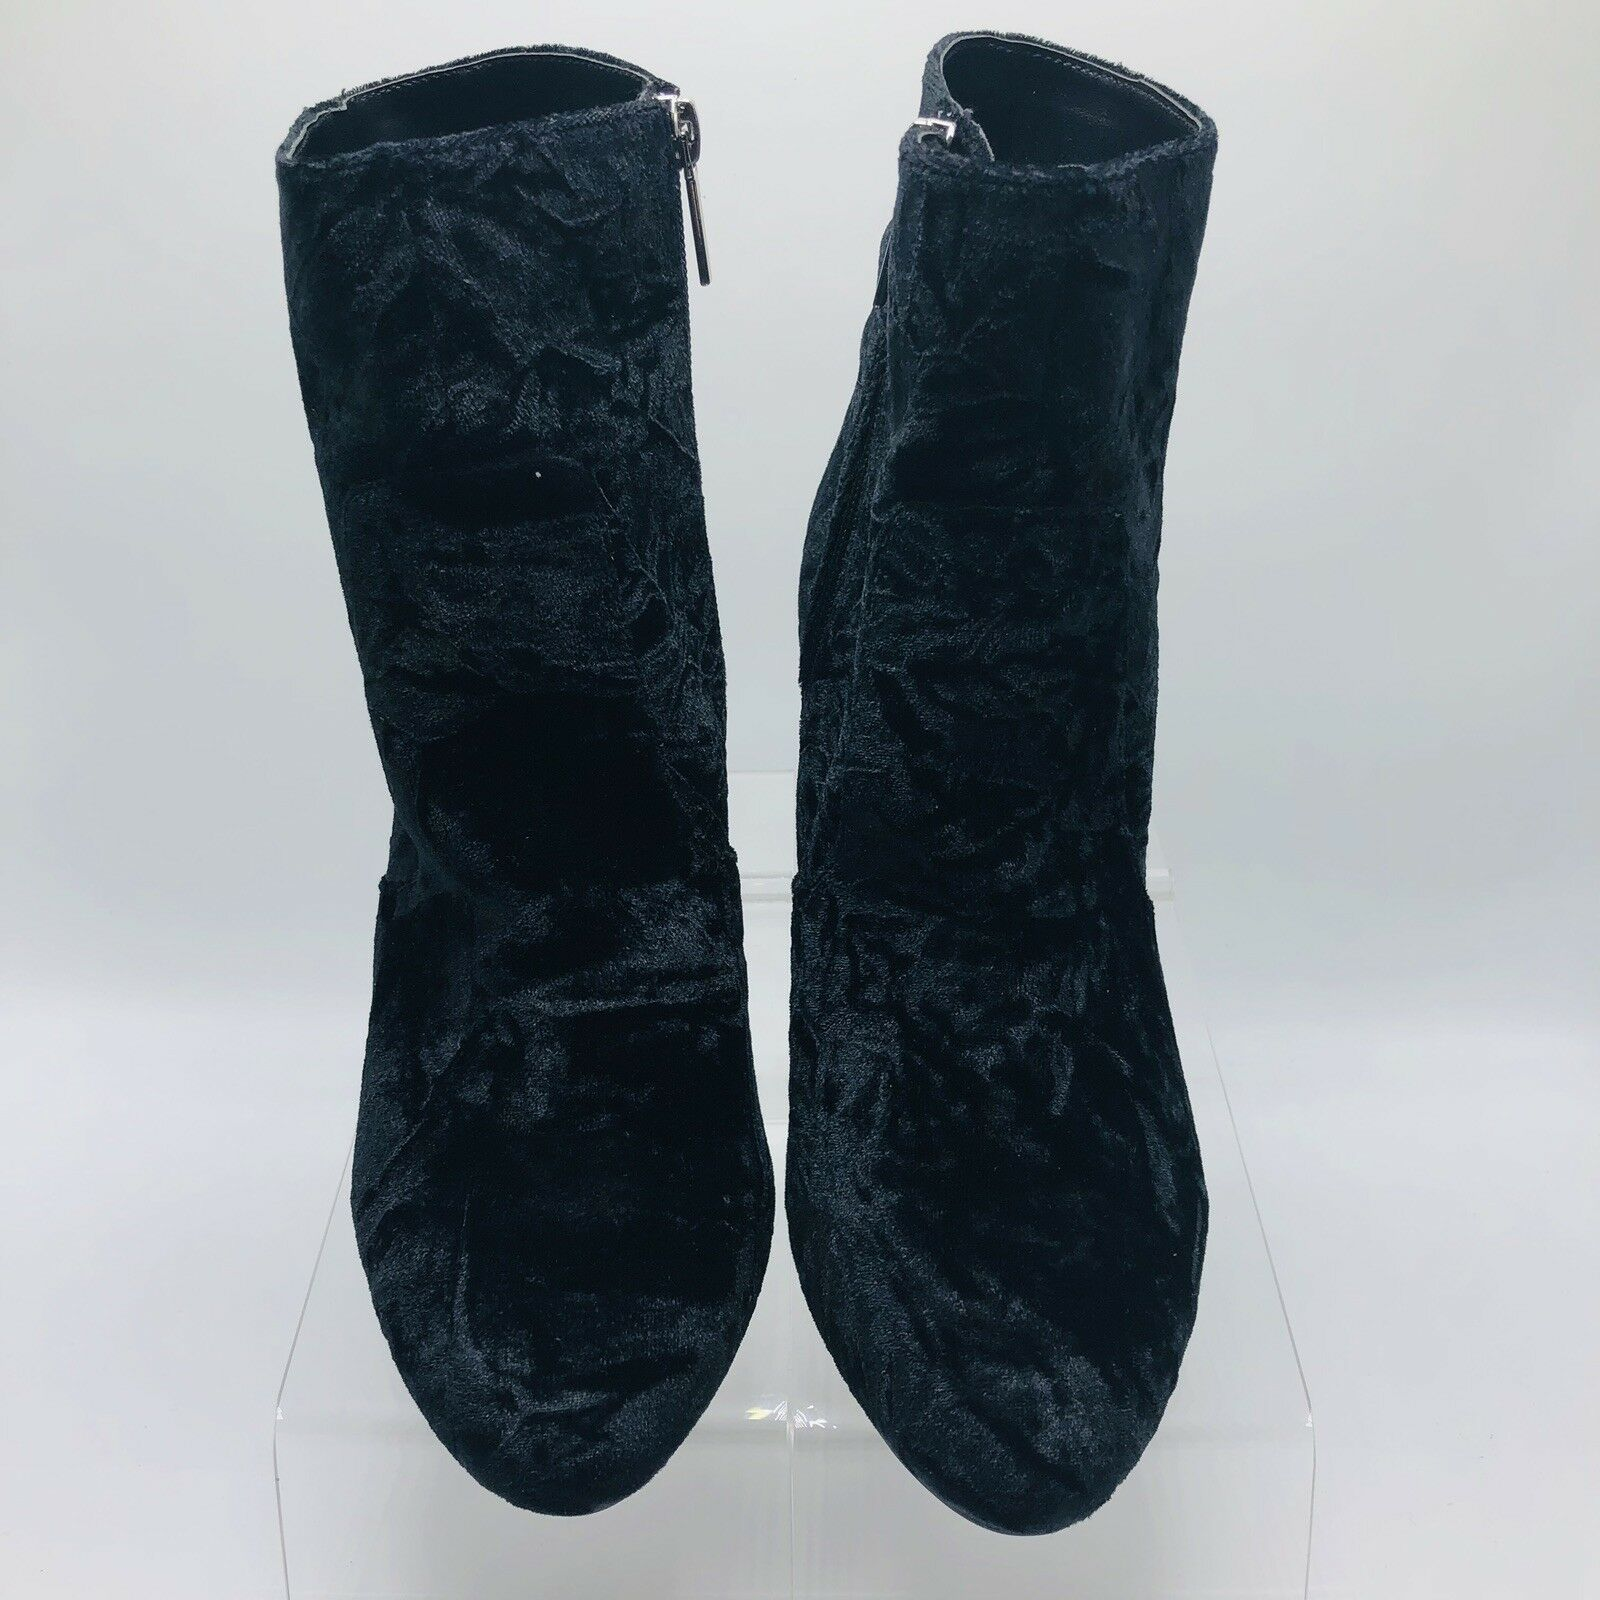 Wendy Williams Womens Boots Velvet Black Suede Crush Size 9 (S)